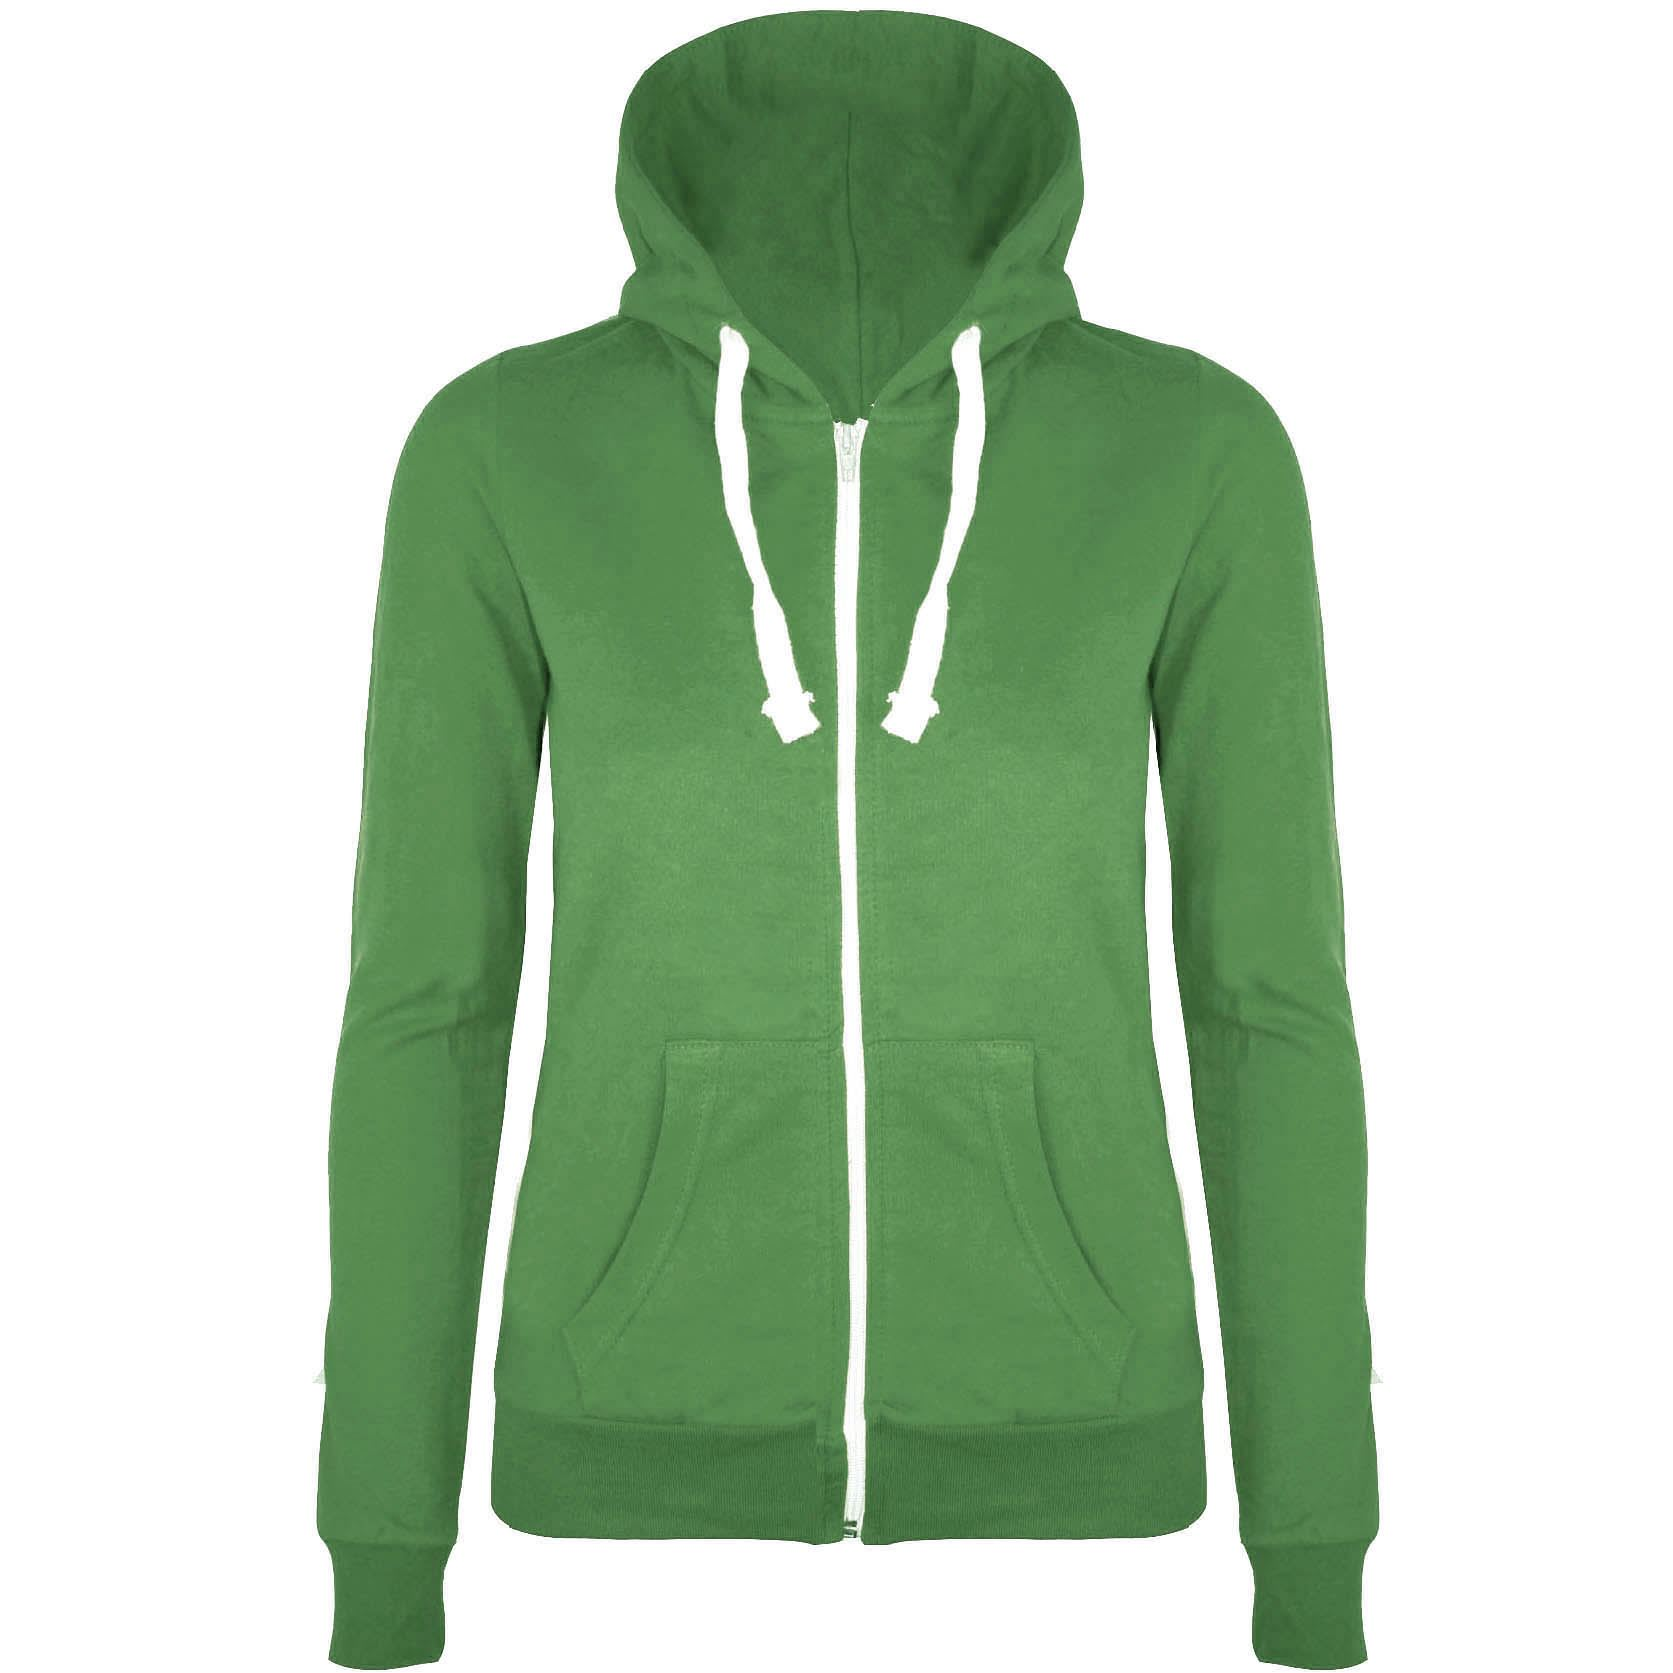 Women's Sweatshirts. Add comfort and warmth to your wardrobe with Women's Hoodies from Kohl's! When you need a comfortable outfit that will keep you feeling great all day, Women's Sweatshirts are sure to provide added appeal and supercool style.